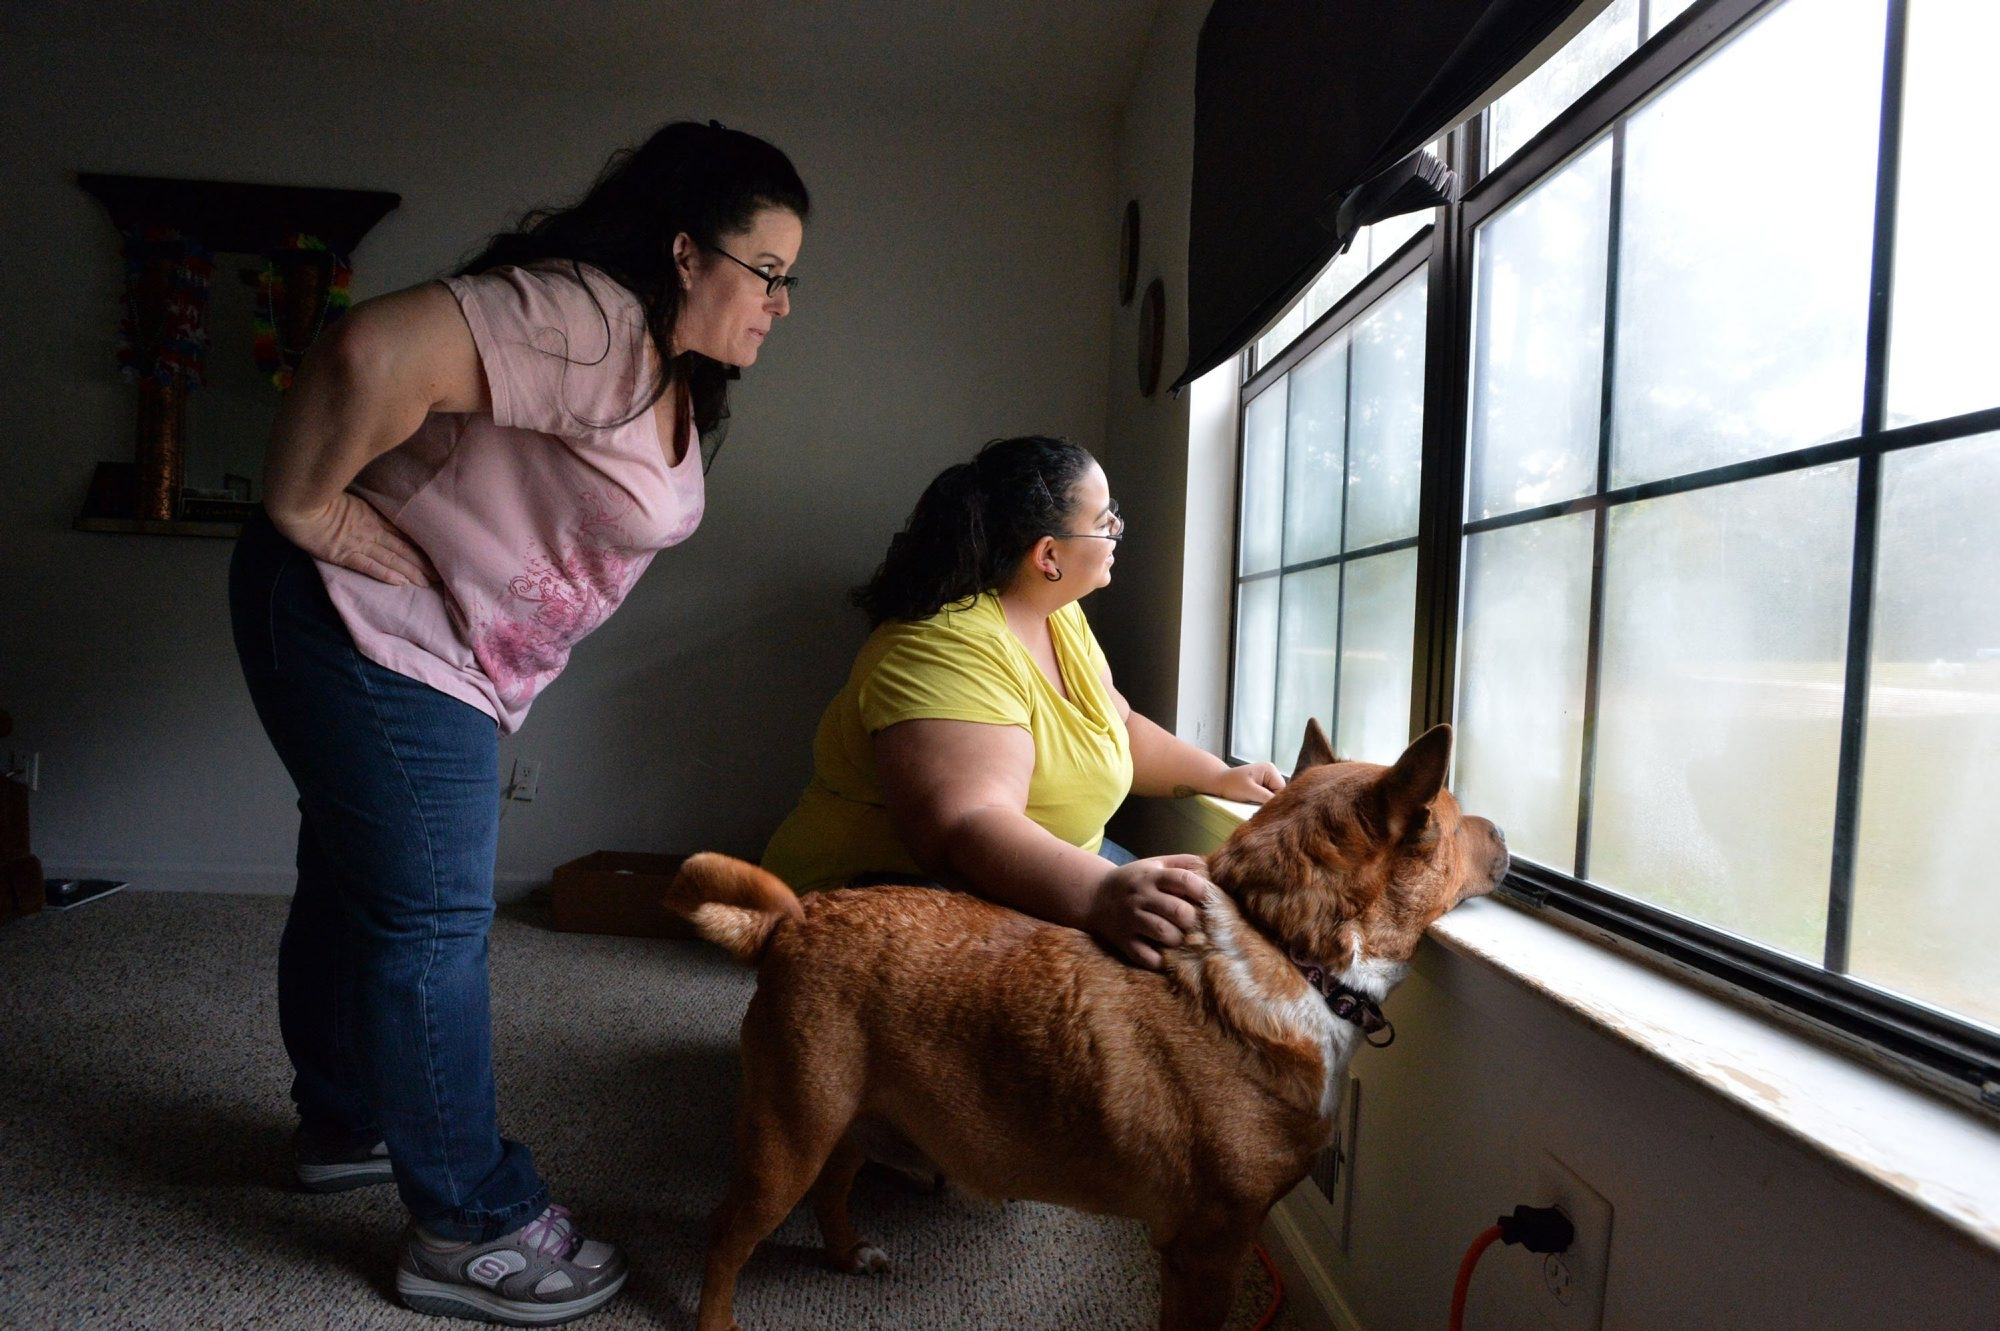 Barbara Hairston, left, pictured at her Tyrone, Ga., home with her daughter, Nichole Corbridge, and dog Tequila, has been unable to find work despite two decades of experience as a medical assistant.